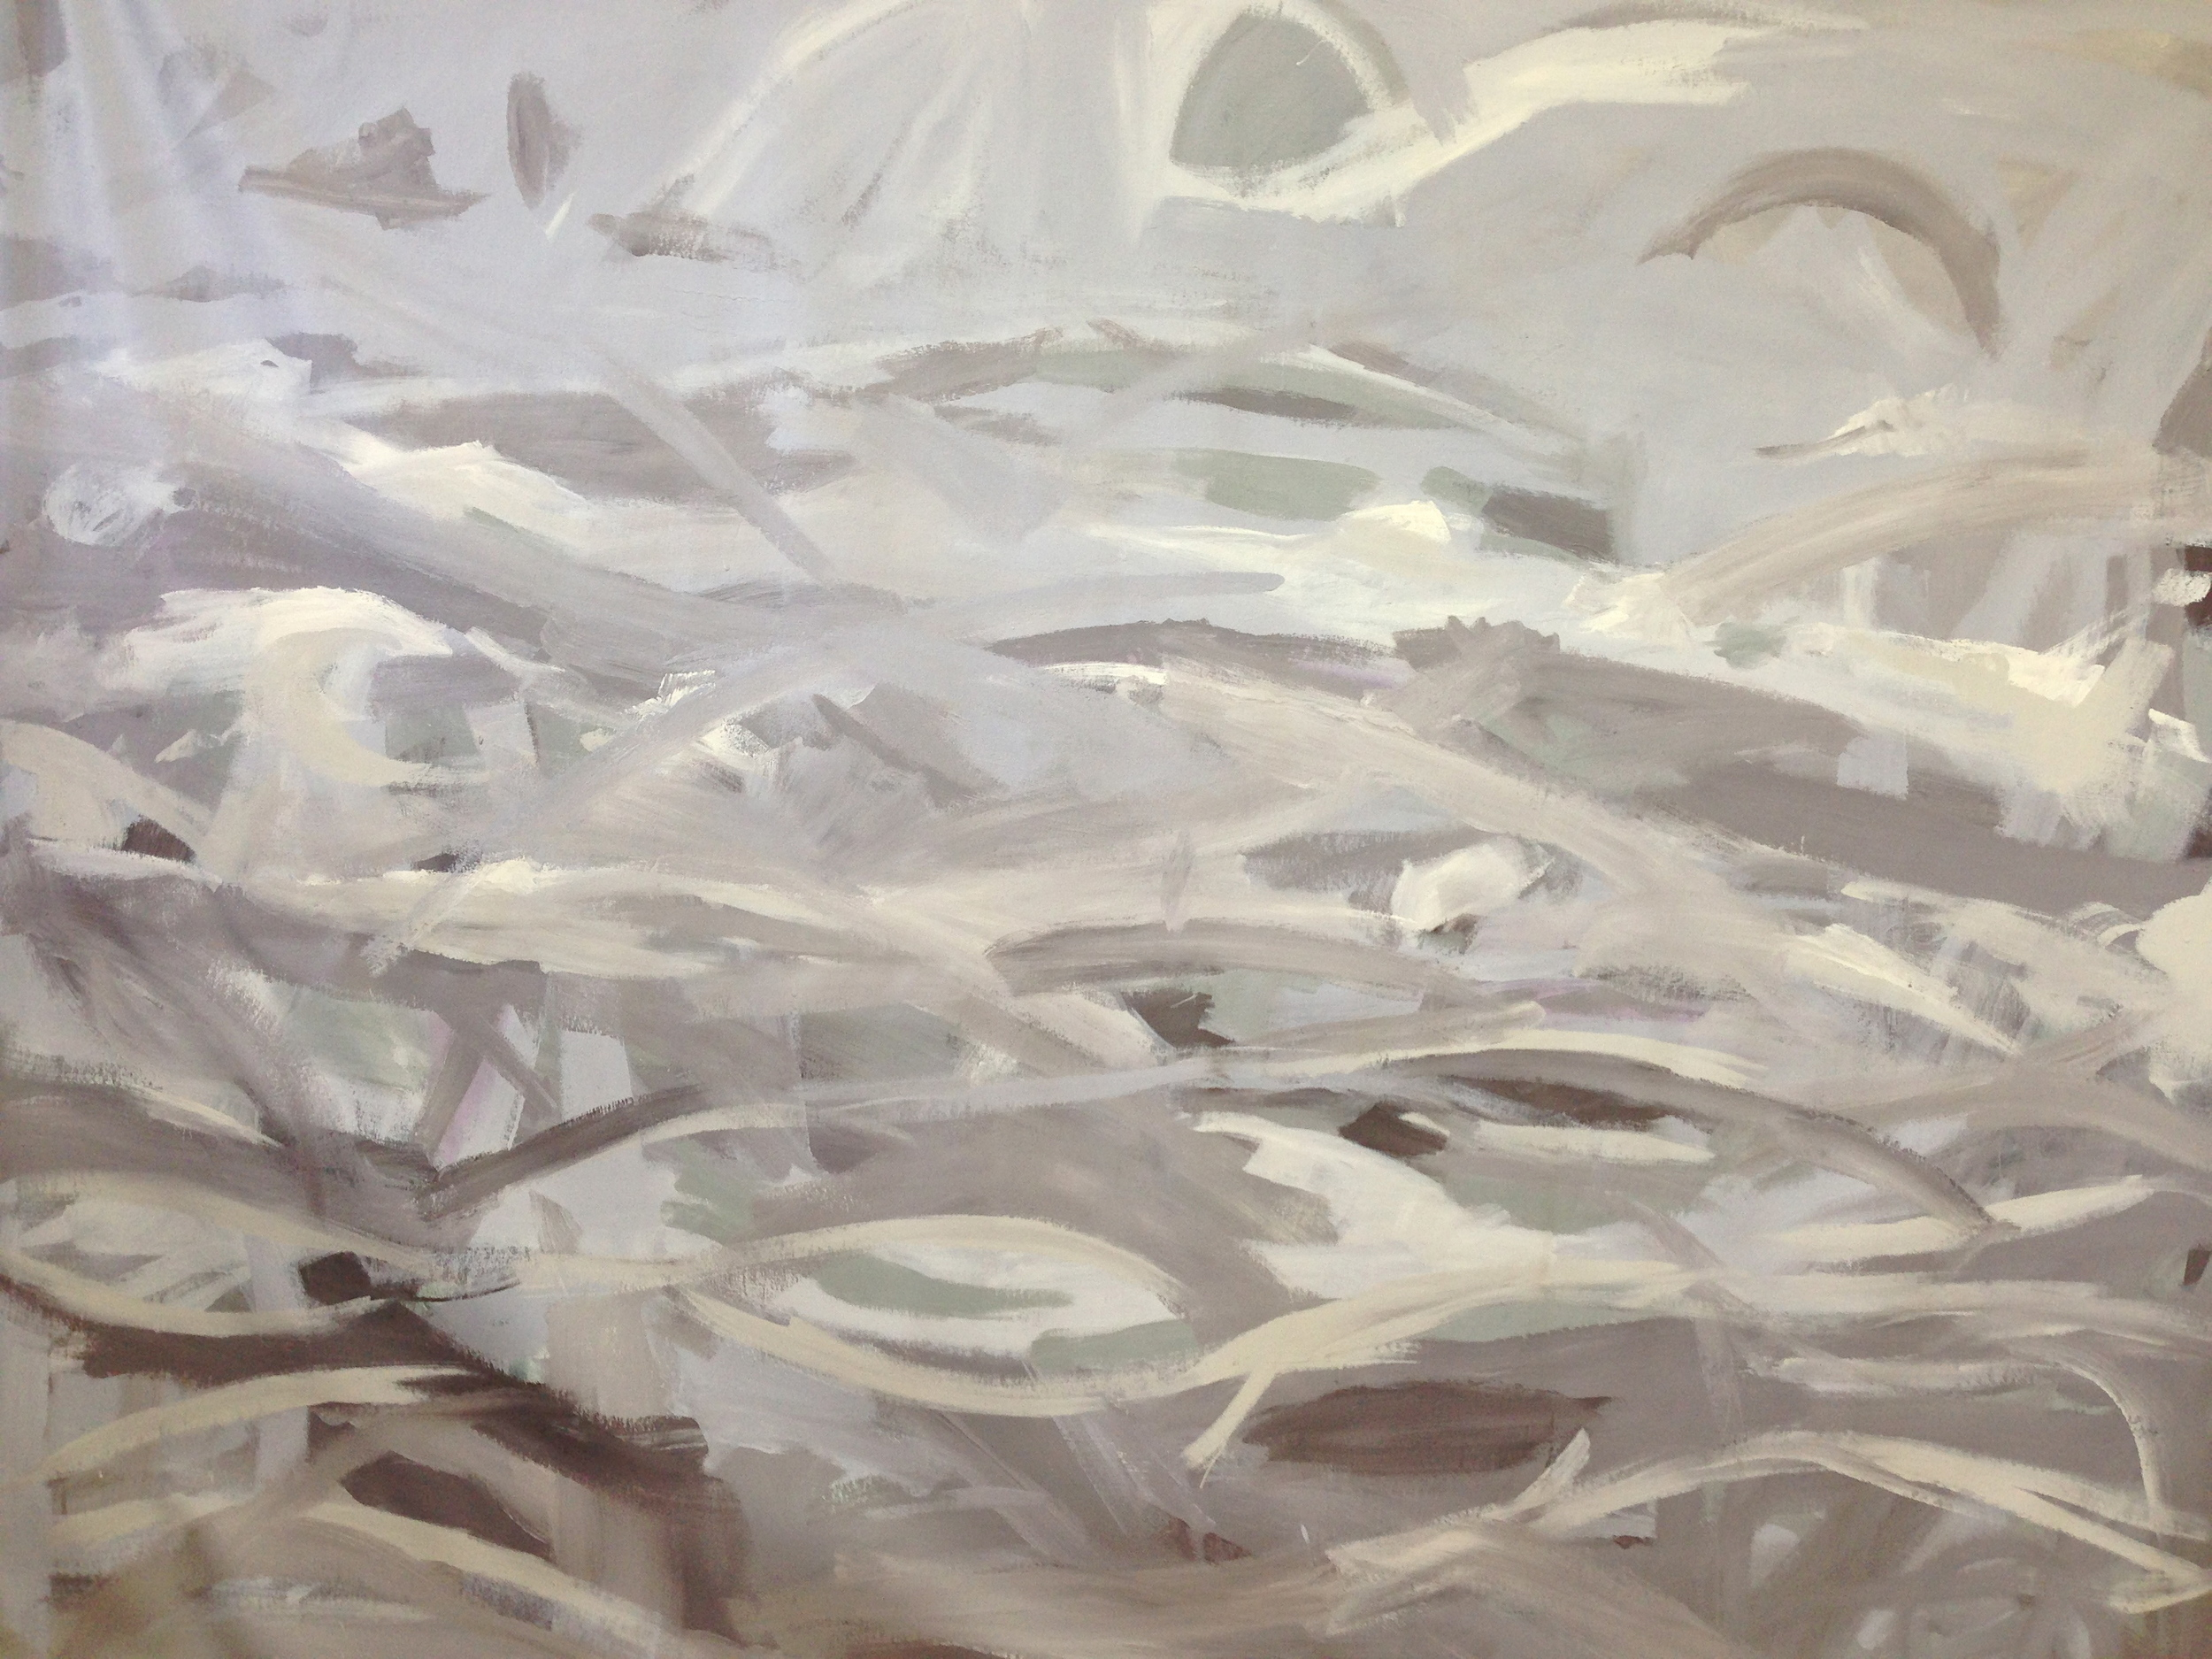 Wind Storm- Sold  72 x 90 inches  acrylic on canvas